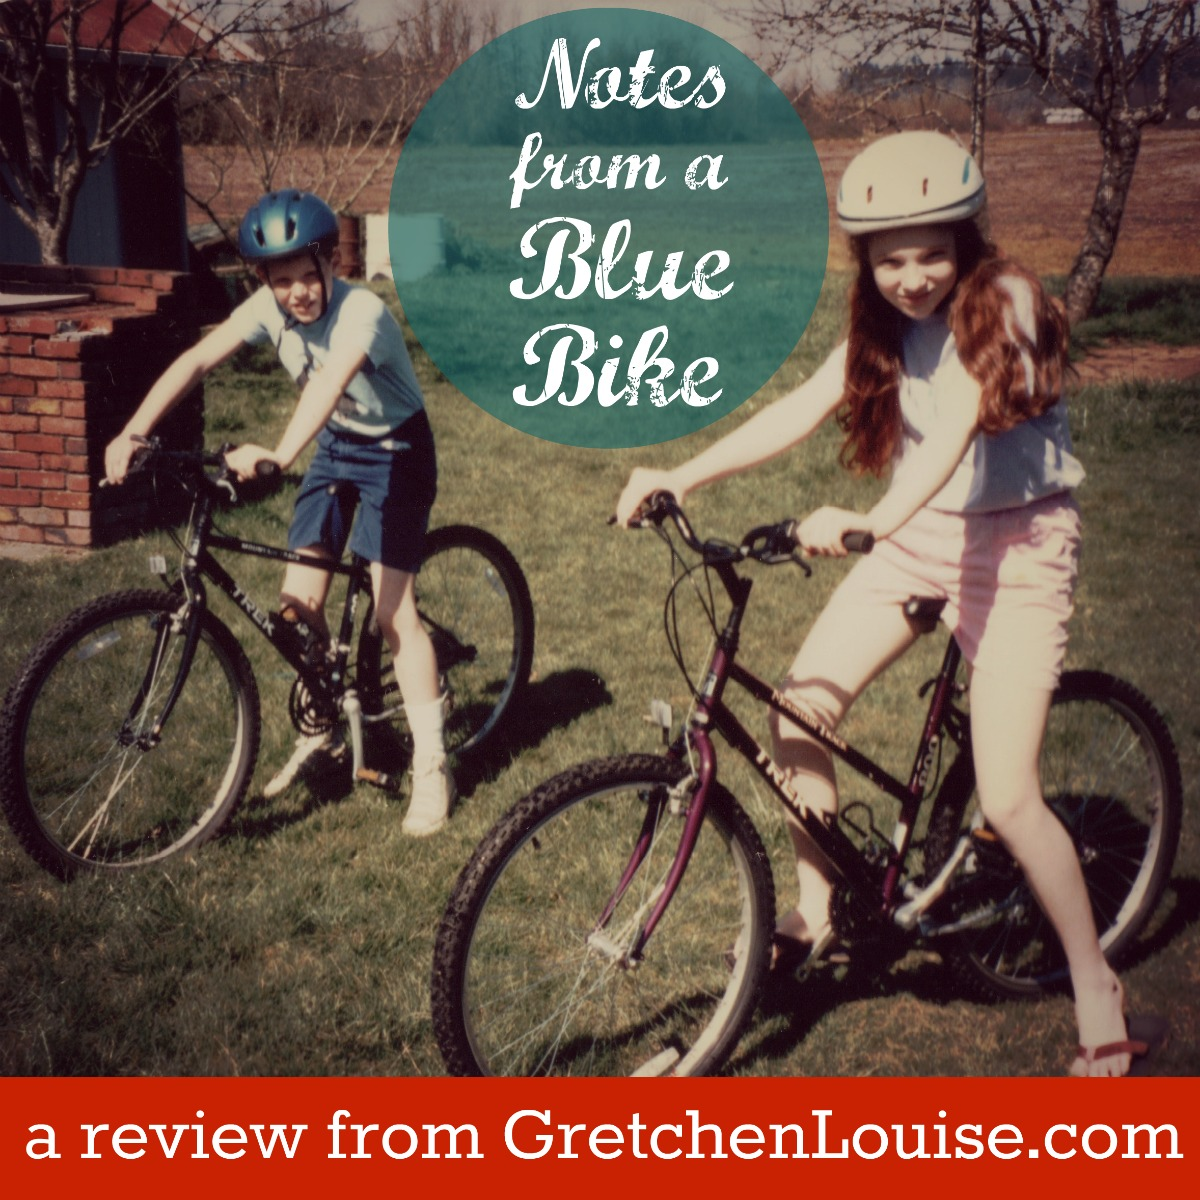 Living Life on Purpose (a review of Notes from a Blue Bike)